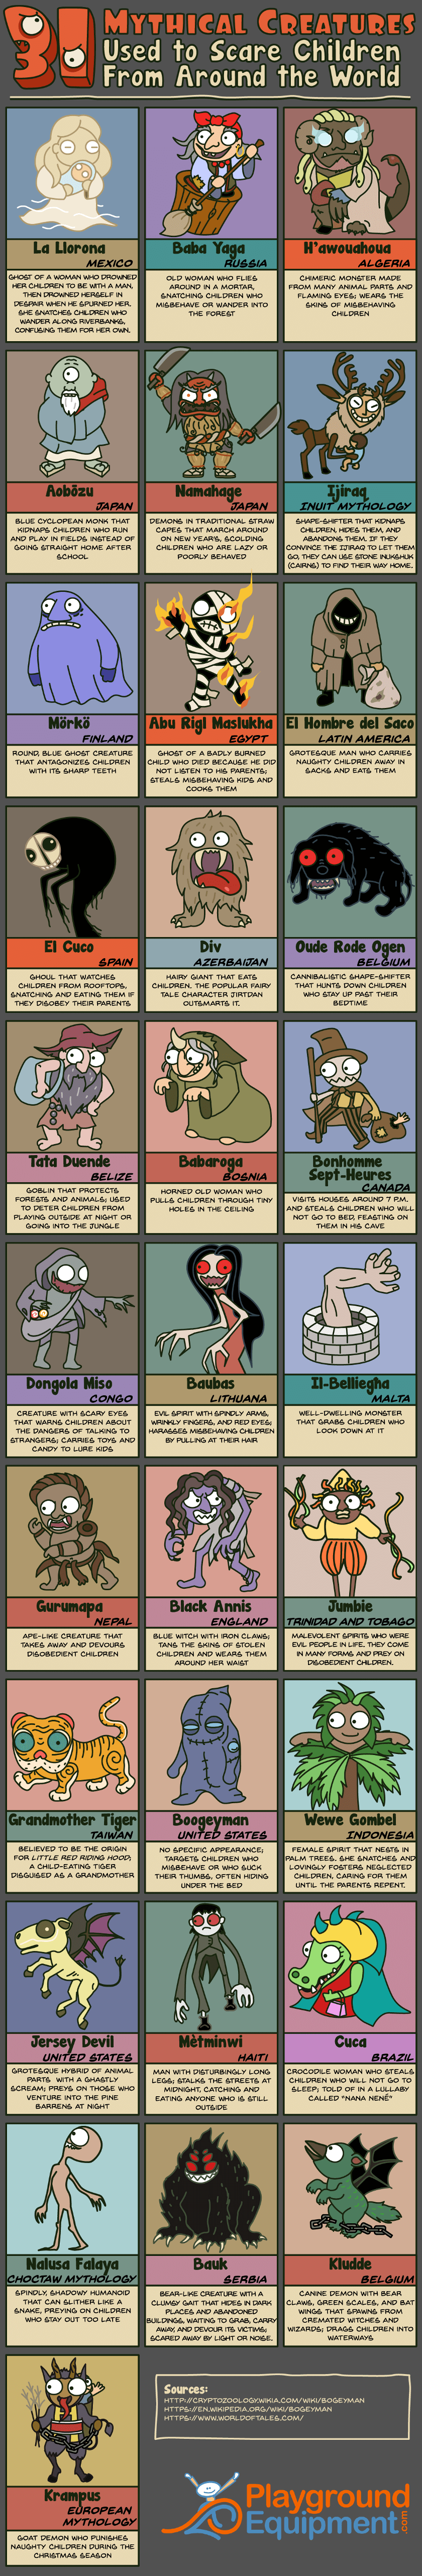 31 Mythical Creatures Used to Scare Children From Around the World - PlaygroundEquipment.com - Infographic